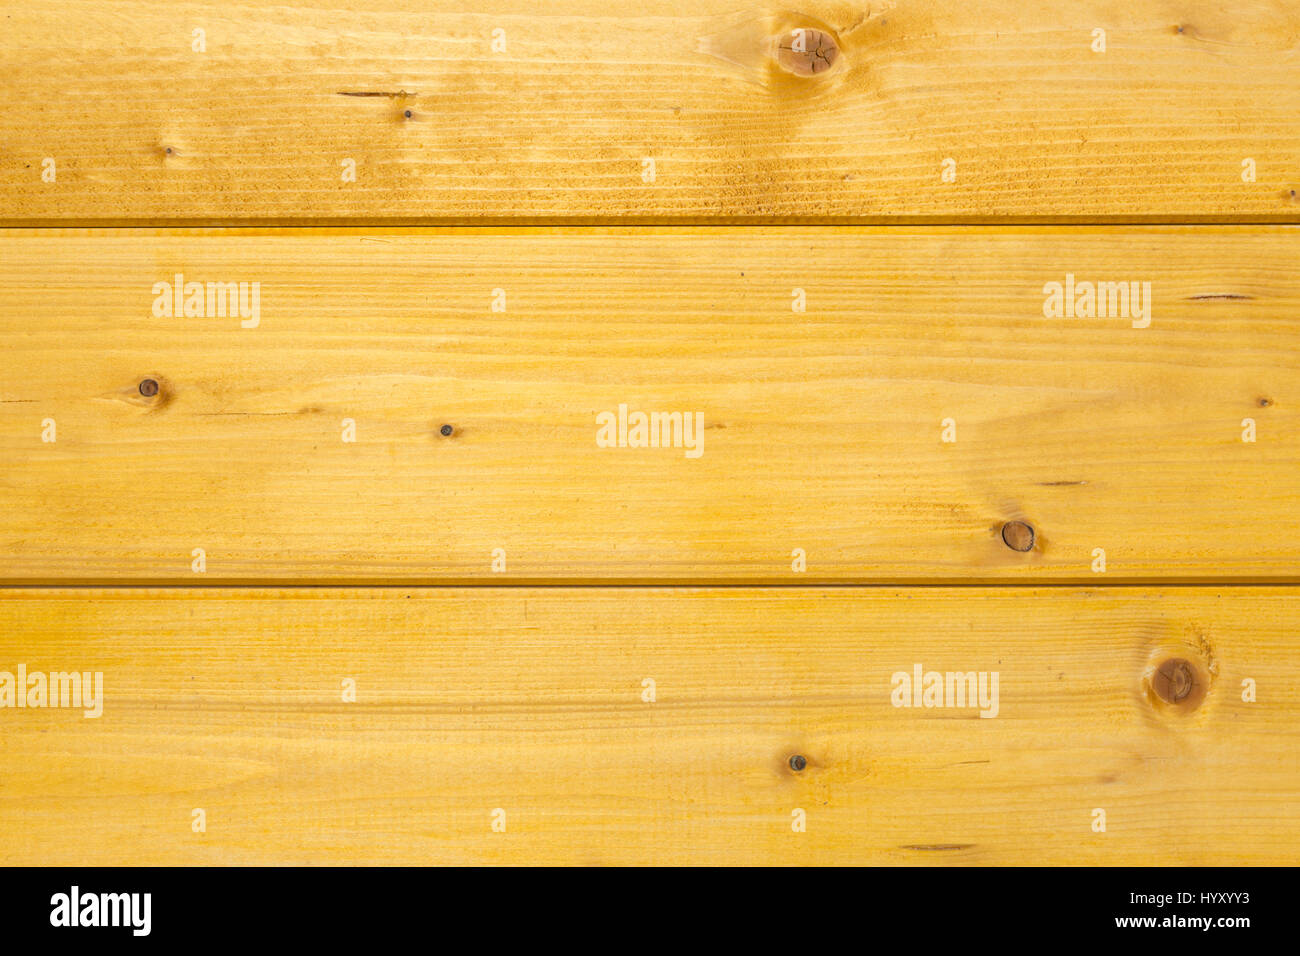 Texture of treated, stained and polished wood with natural spots, scars and marks - Stock Image